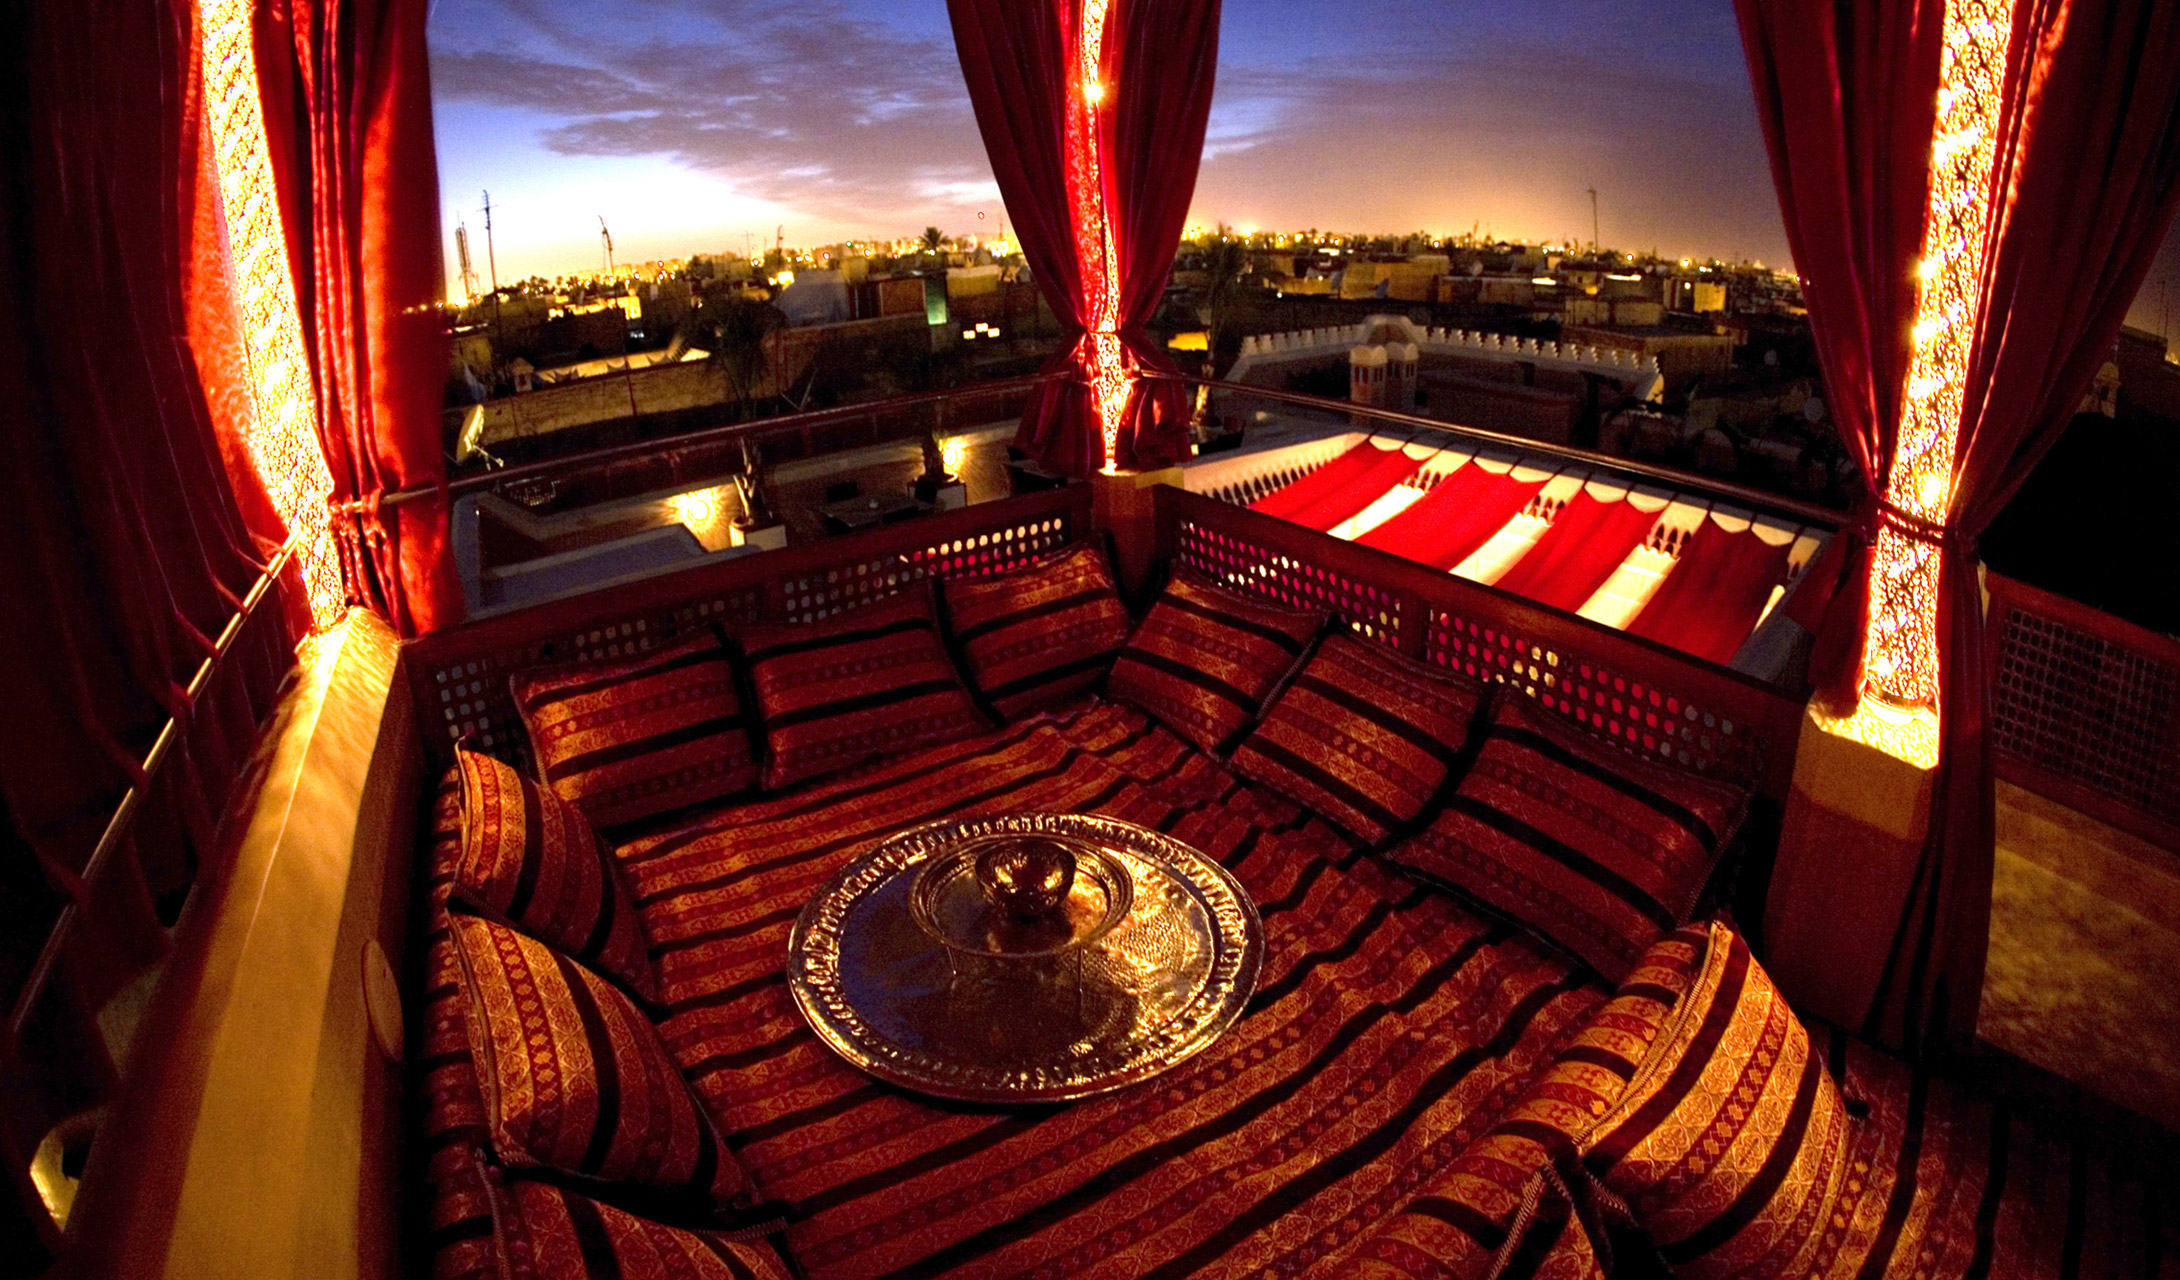 AnaYela rooftop terrace with deep red cushions and gold detail